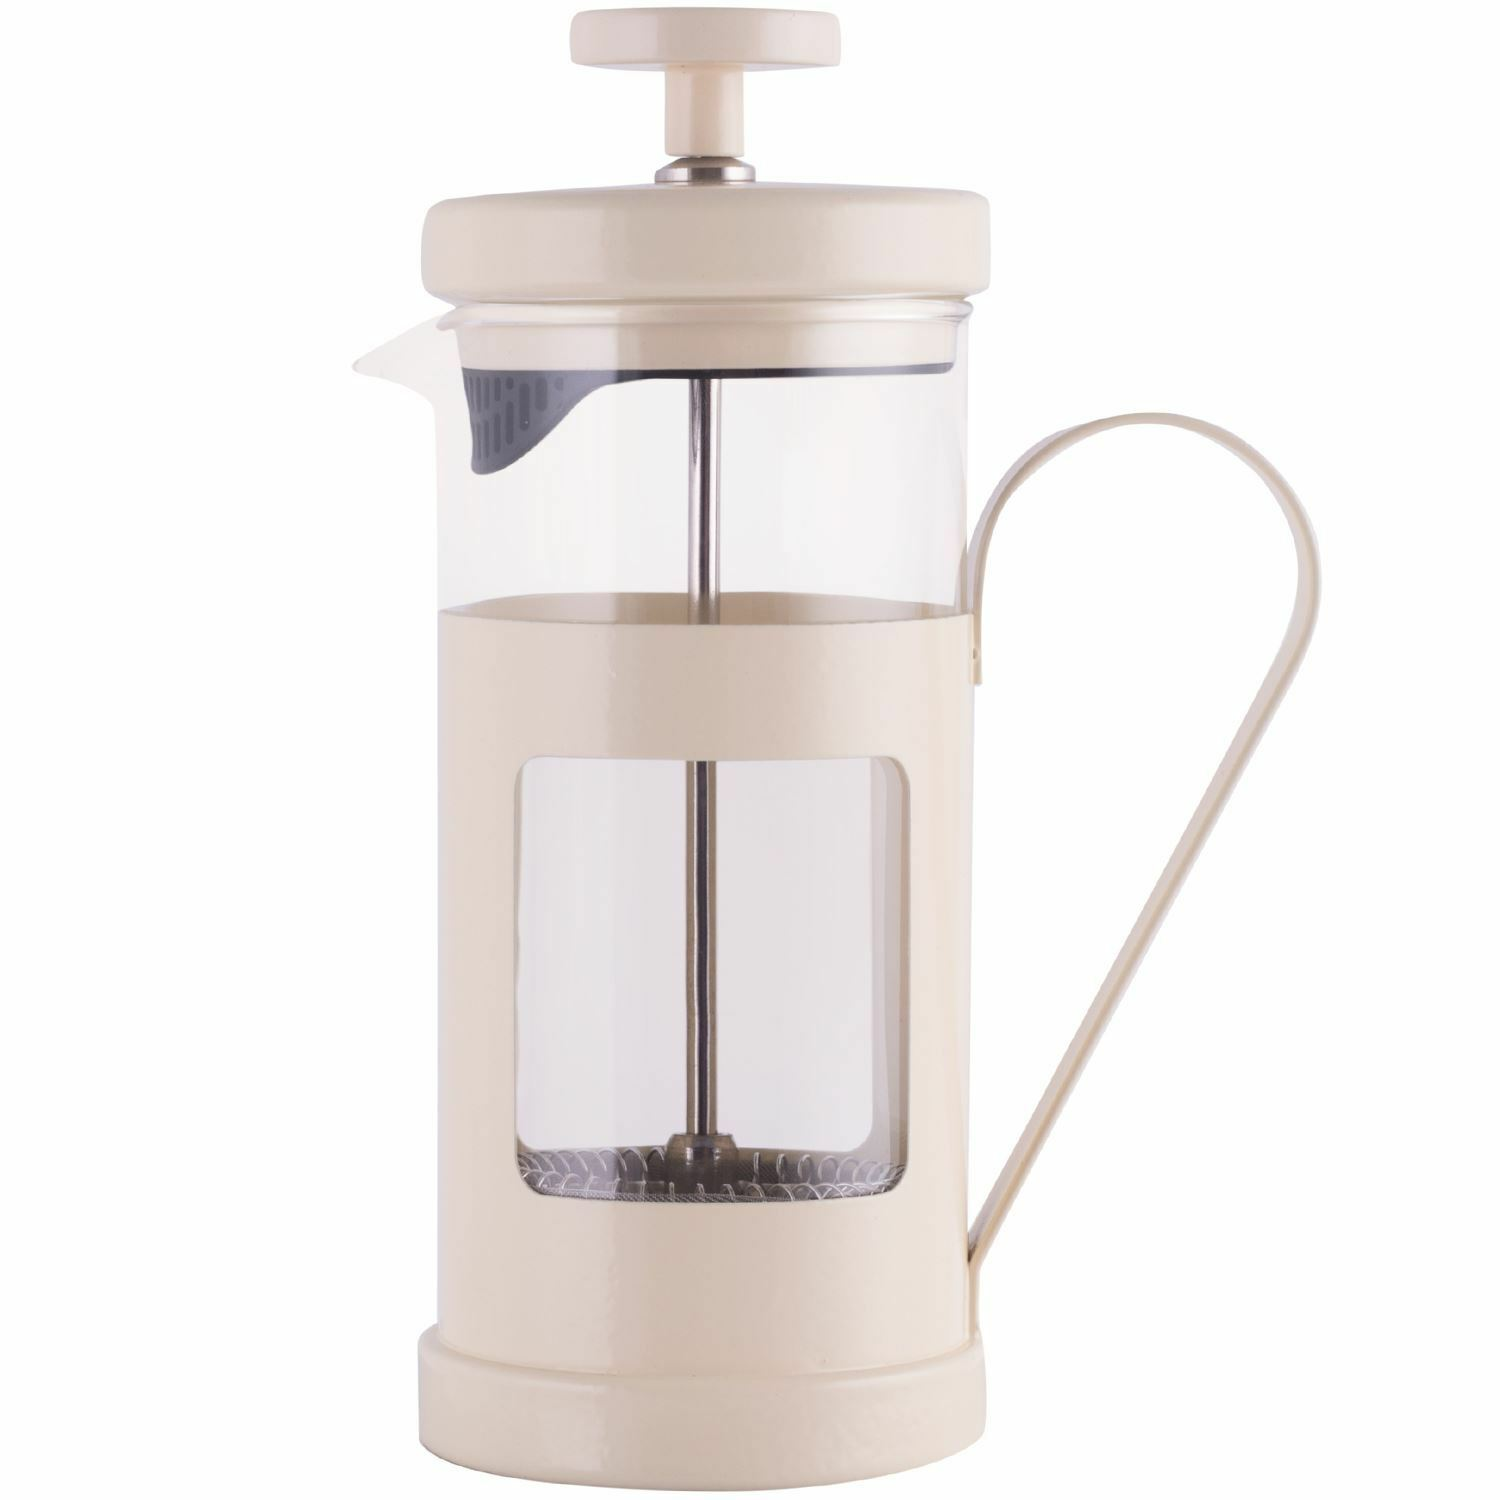 la cafetiere monaco 3 cup cream cafetiere coffee maker. Black Bedroom Furniture Sets. Home Design Ideas